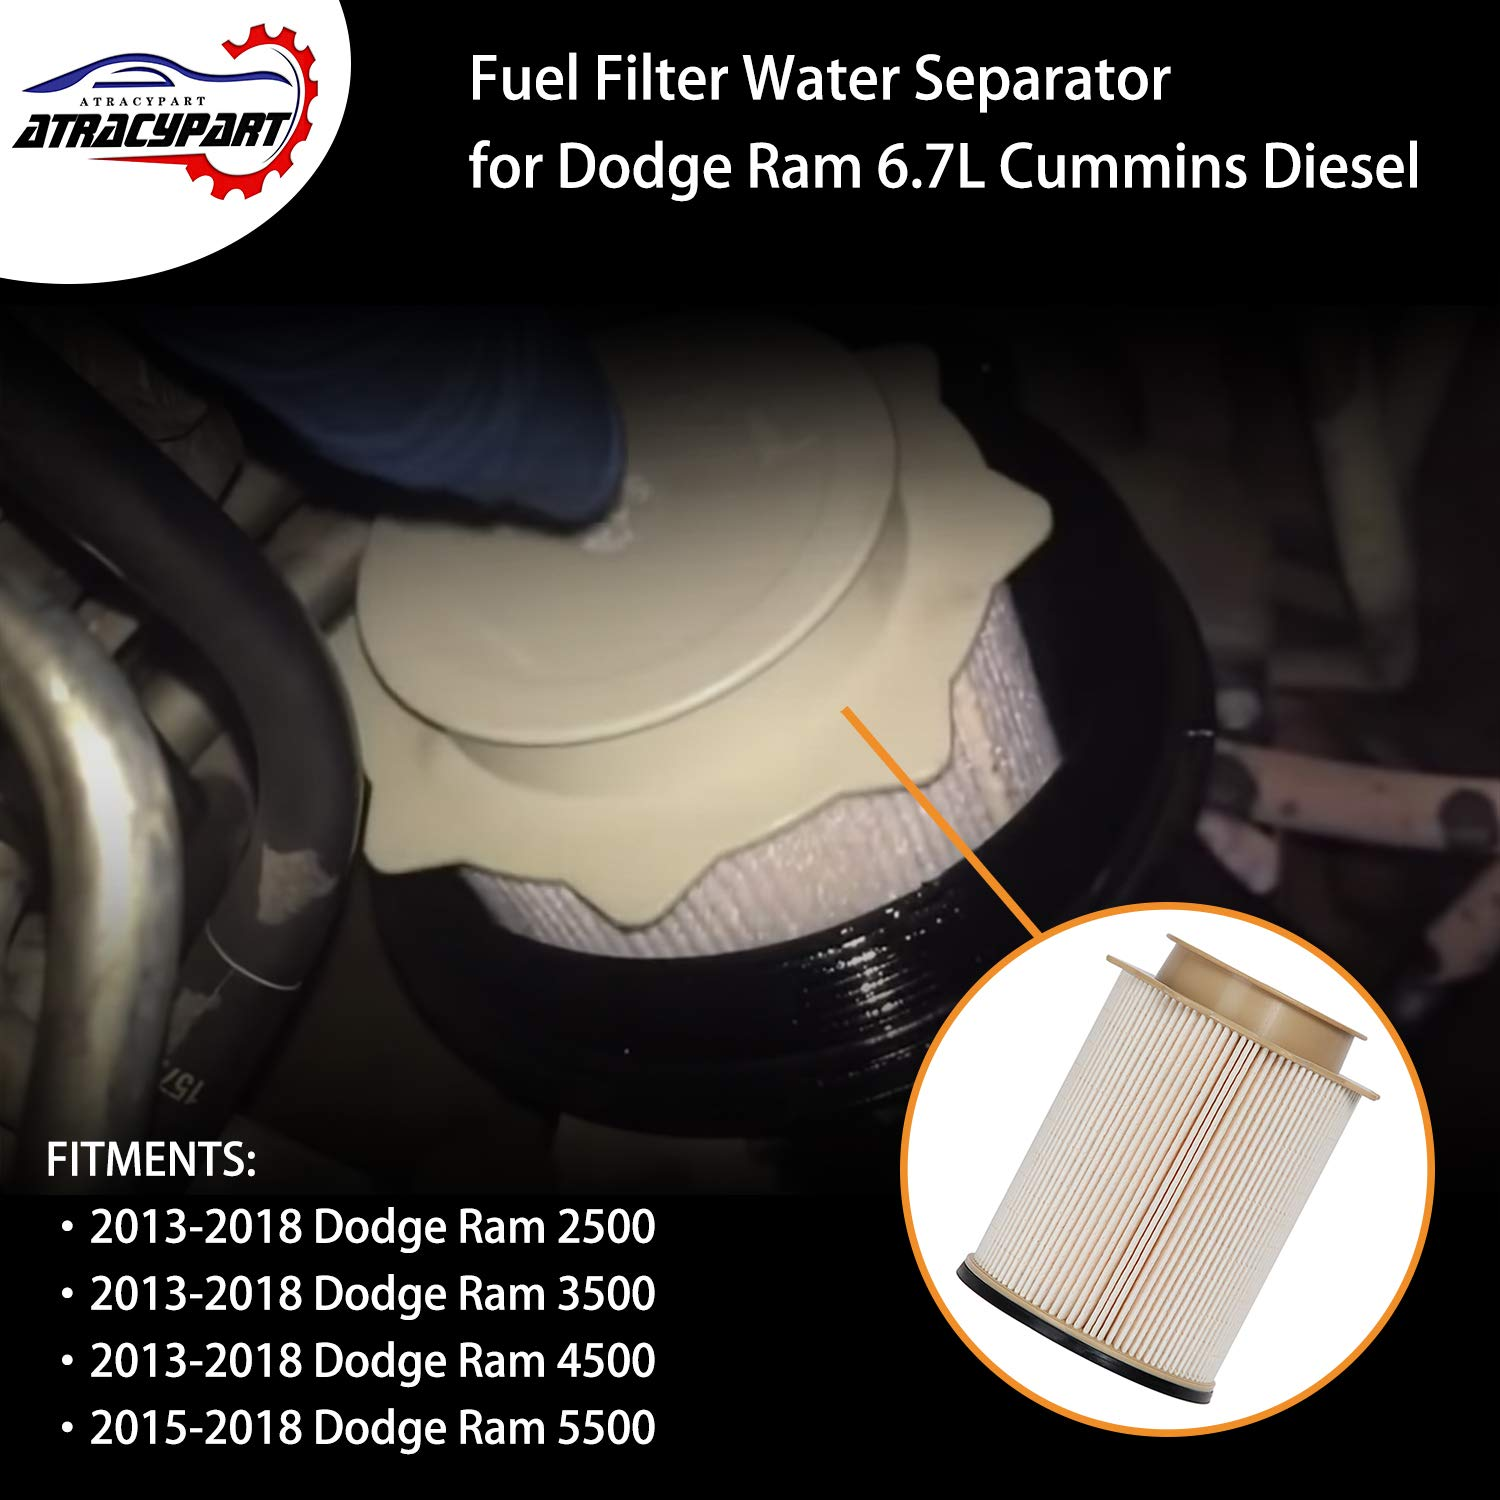 amazon com: 6 7l cummins fuel filter water separator set | for 2013-2018 dodge  ram 2500 3500 4500 5500 6 7l cummins turbo diesel engines | replaces#